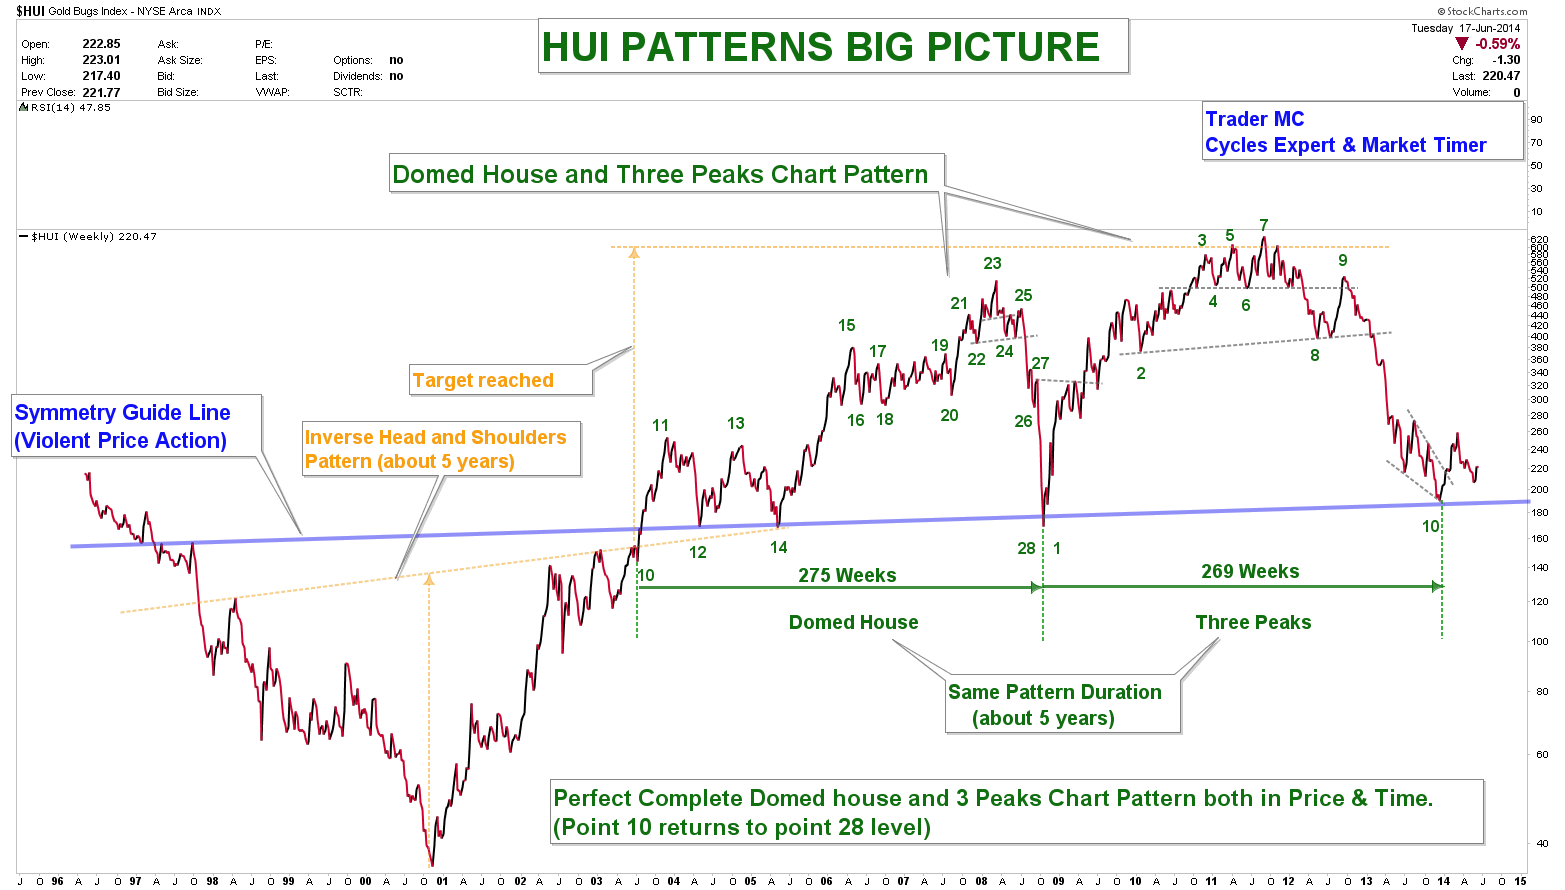 HUI-PATTERNS-BIG-PICTURE-JUN-18_05